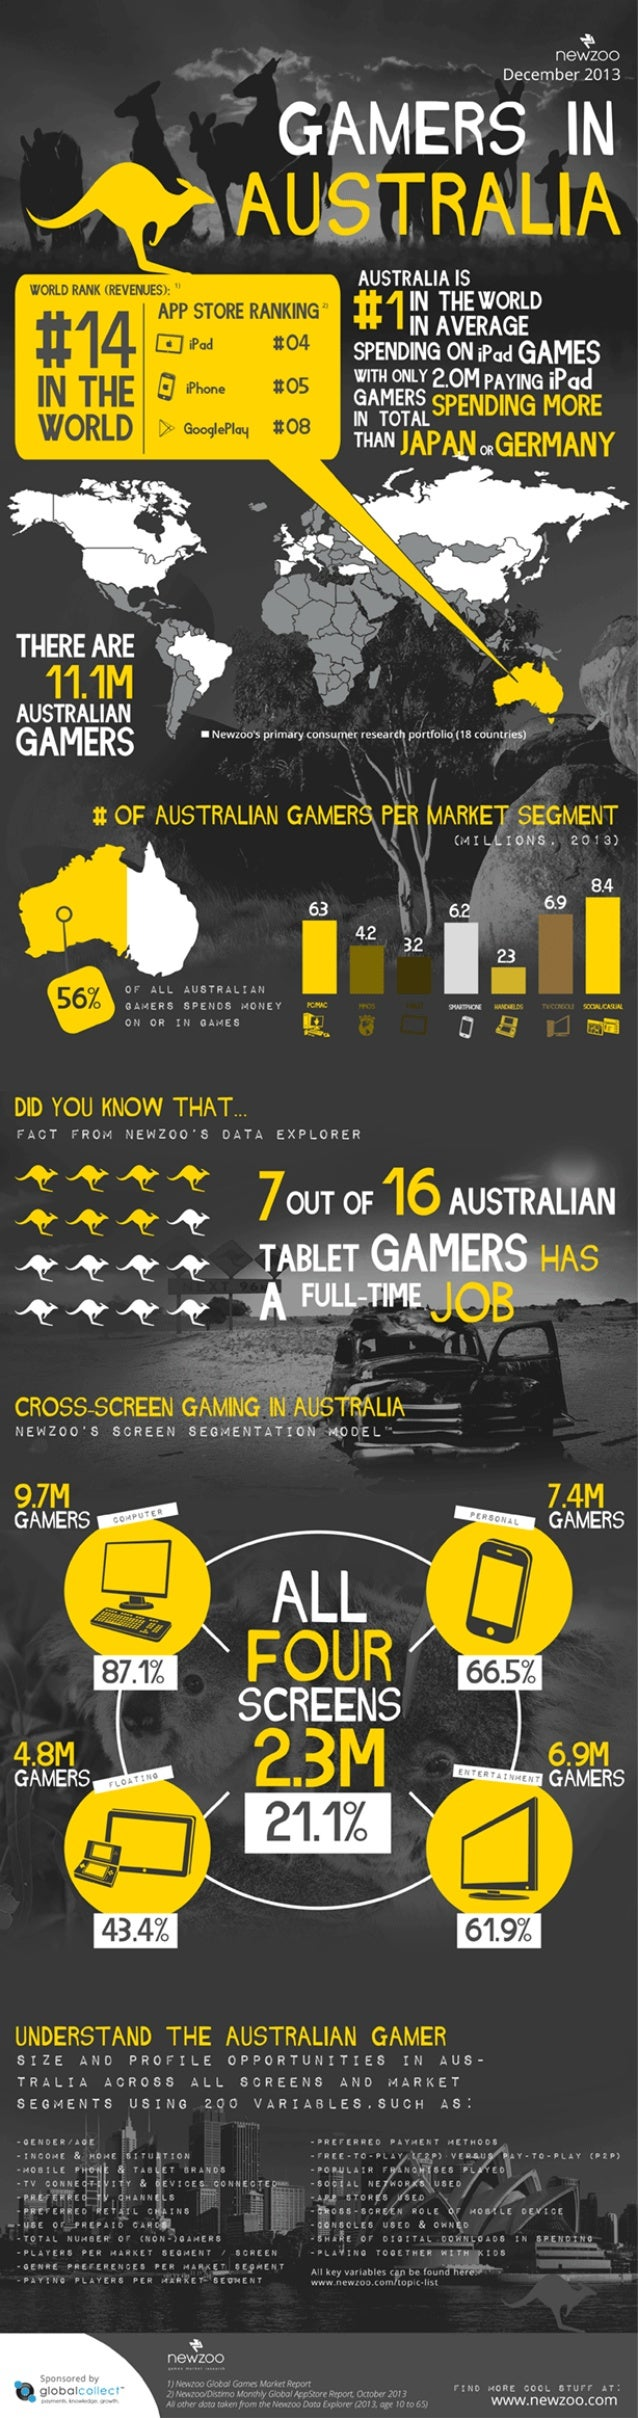 Infographic : The Australian Games Market